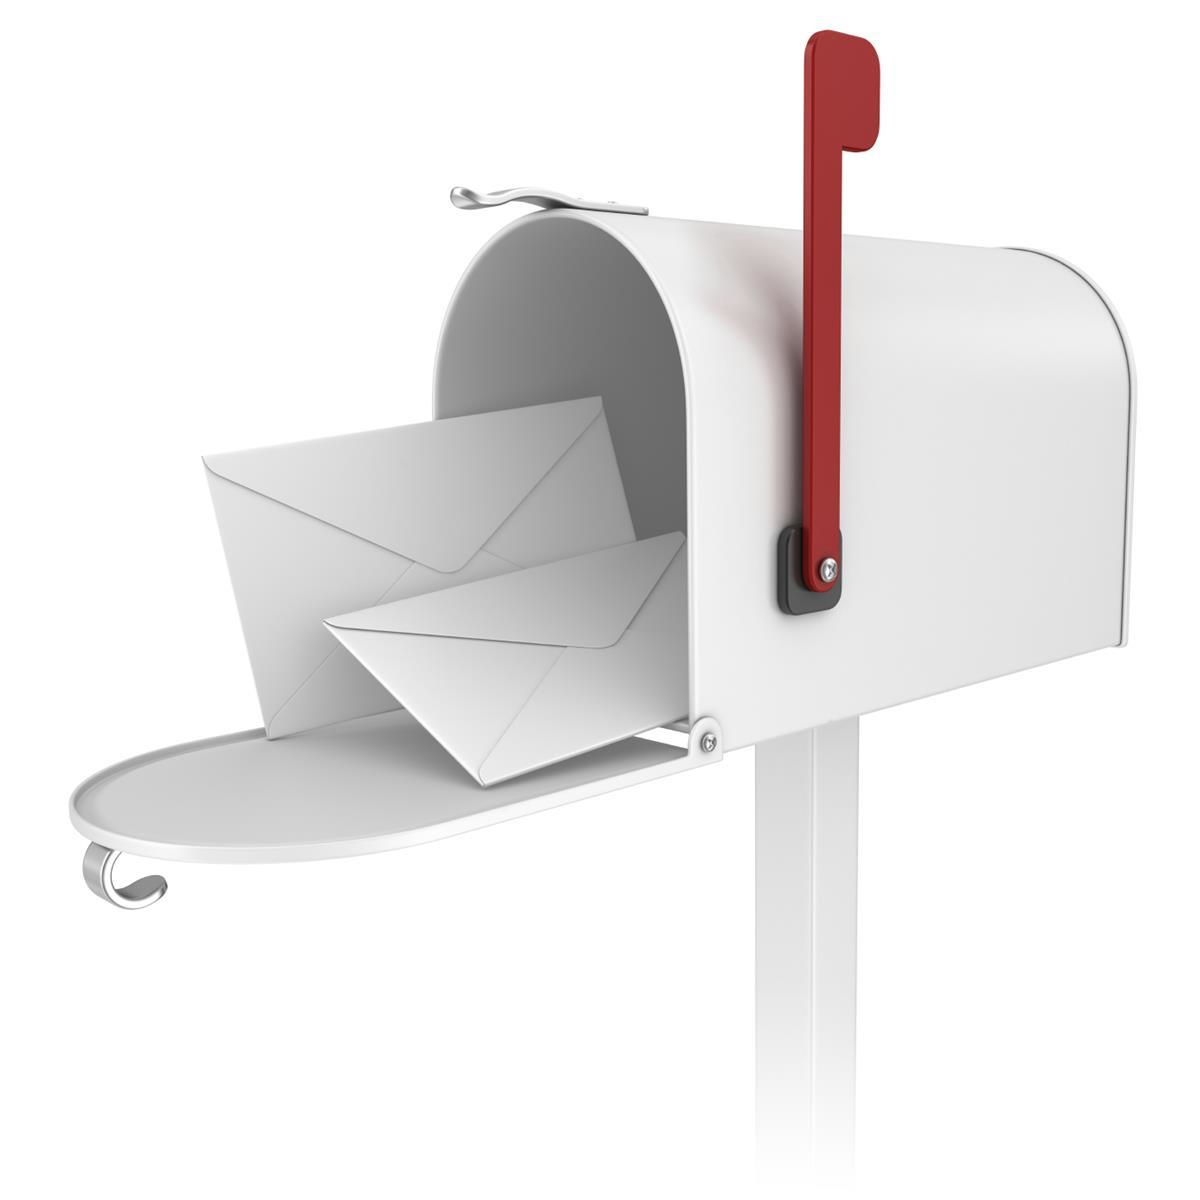 Mailbox with Envelopes